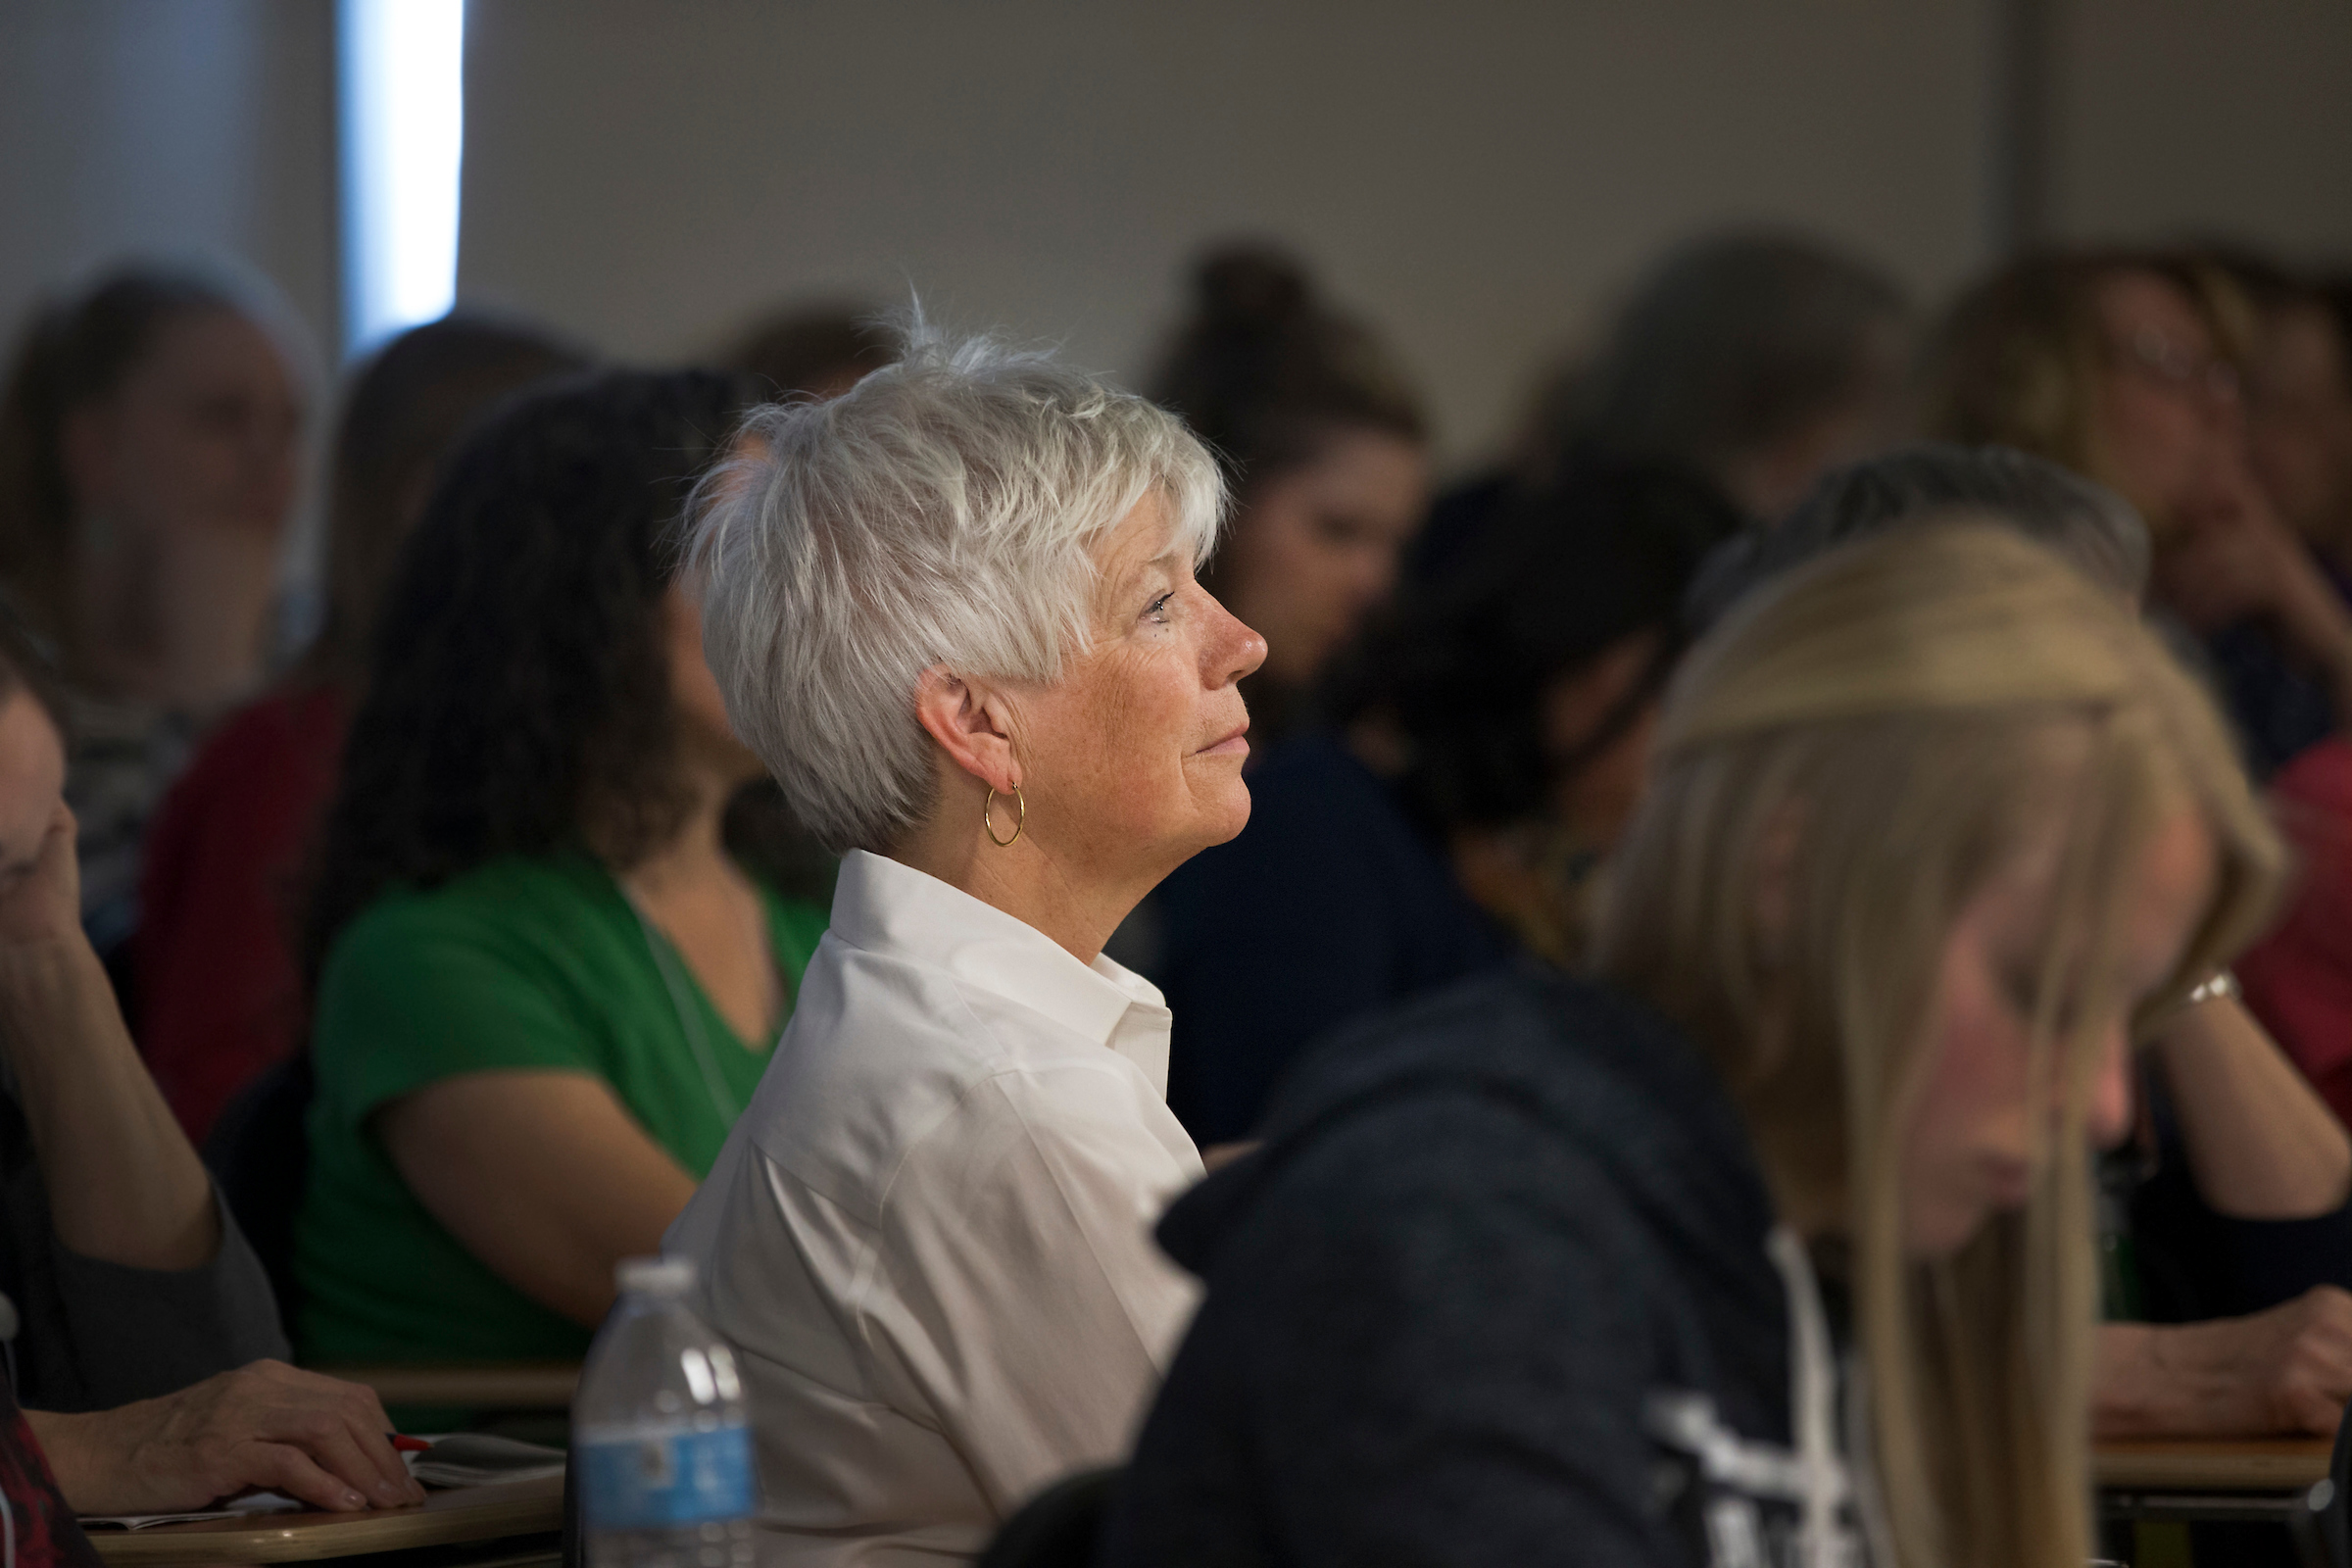 Women listen during a session of BYU Women's Conference held on the BYU campus in Provo, Utah, on May 3-4, 2018.